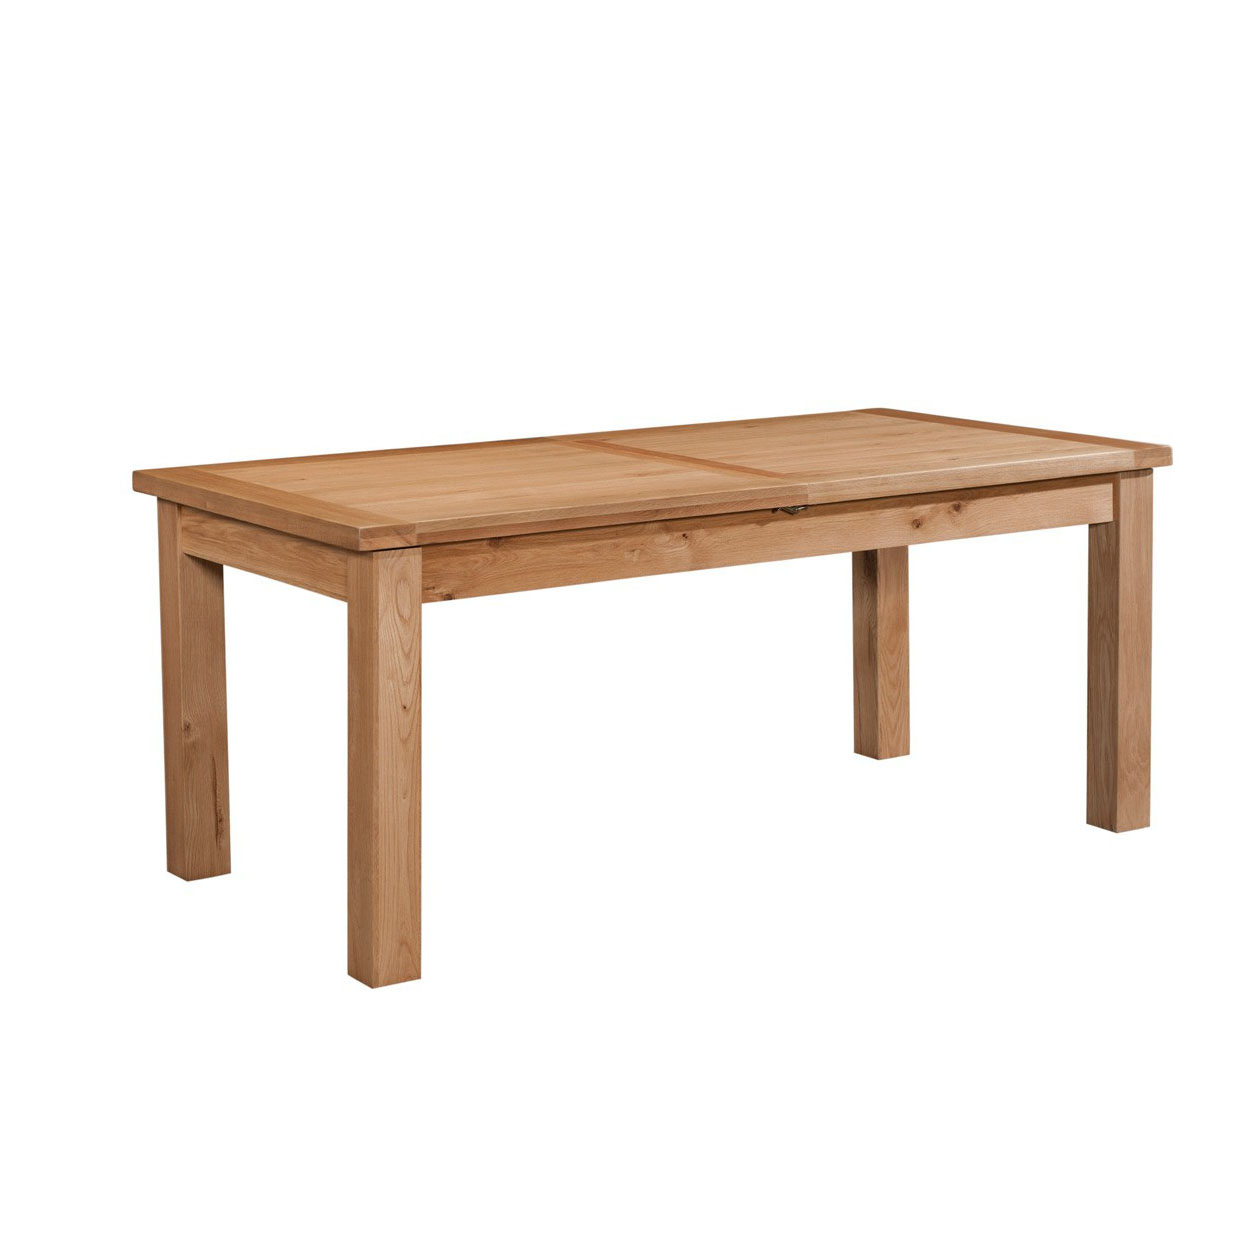 Maiden Oak Dining Table with 2 Extensions 132-198cm